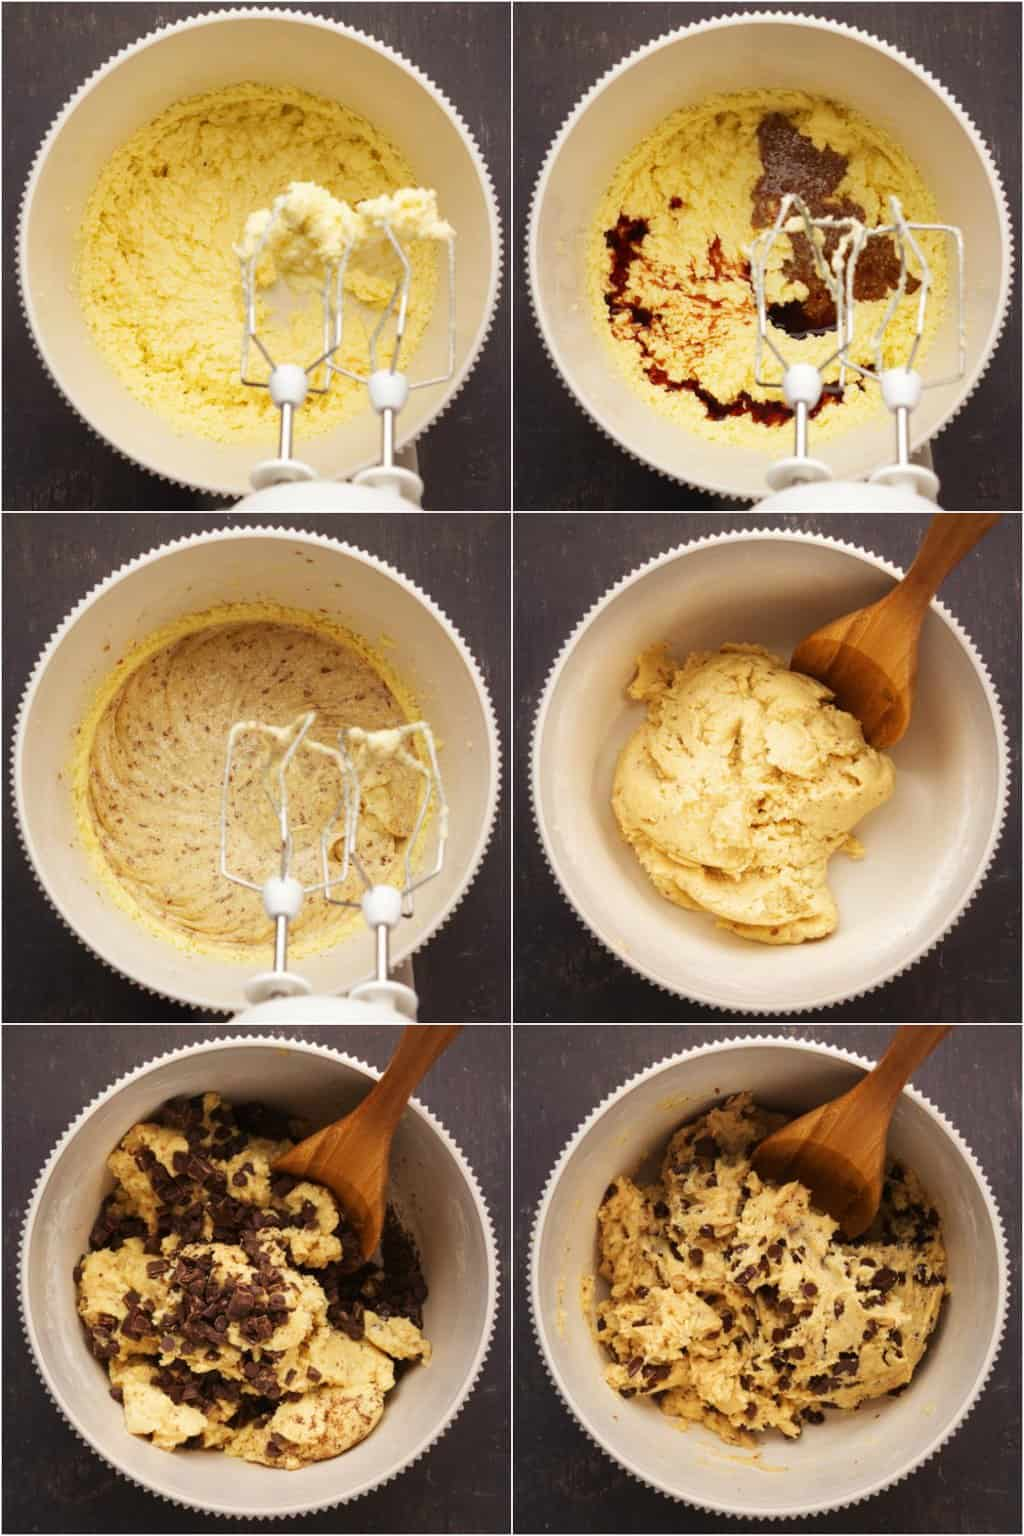 Step by step process photo collage of making vegan gluten free chocolate chip cookies.